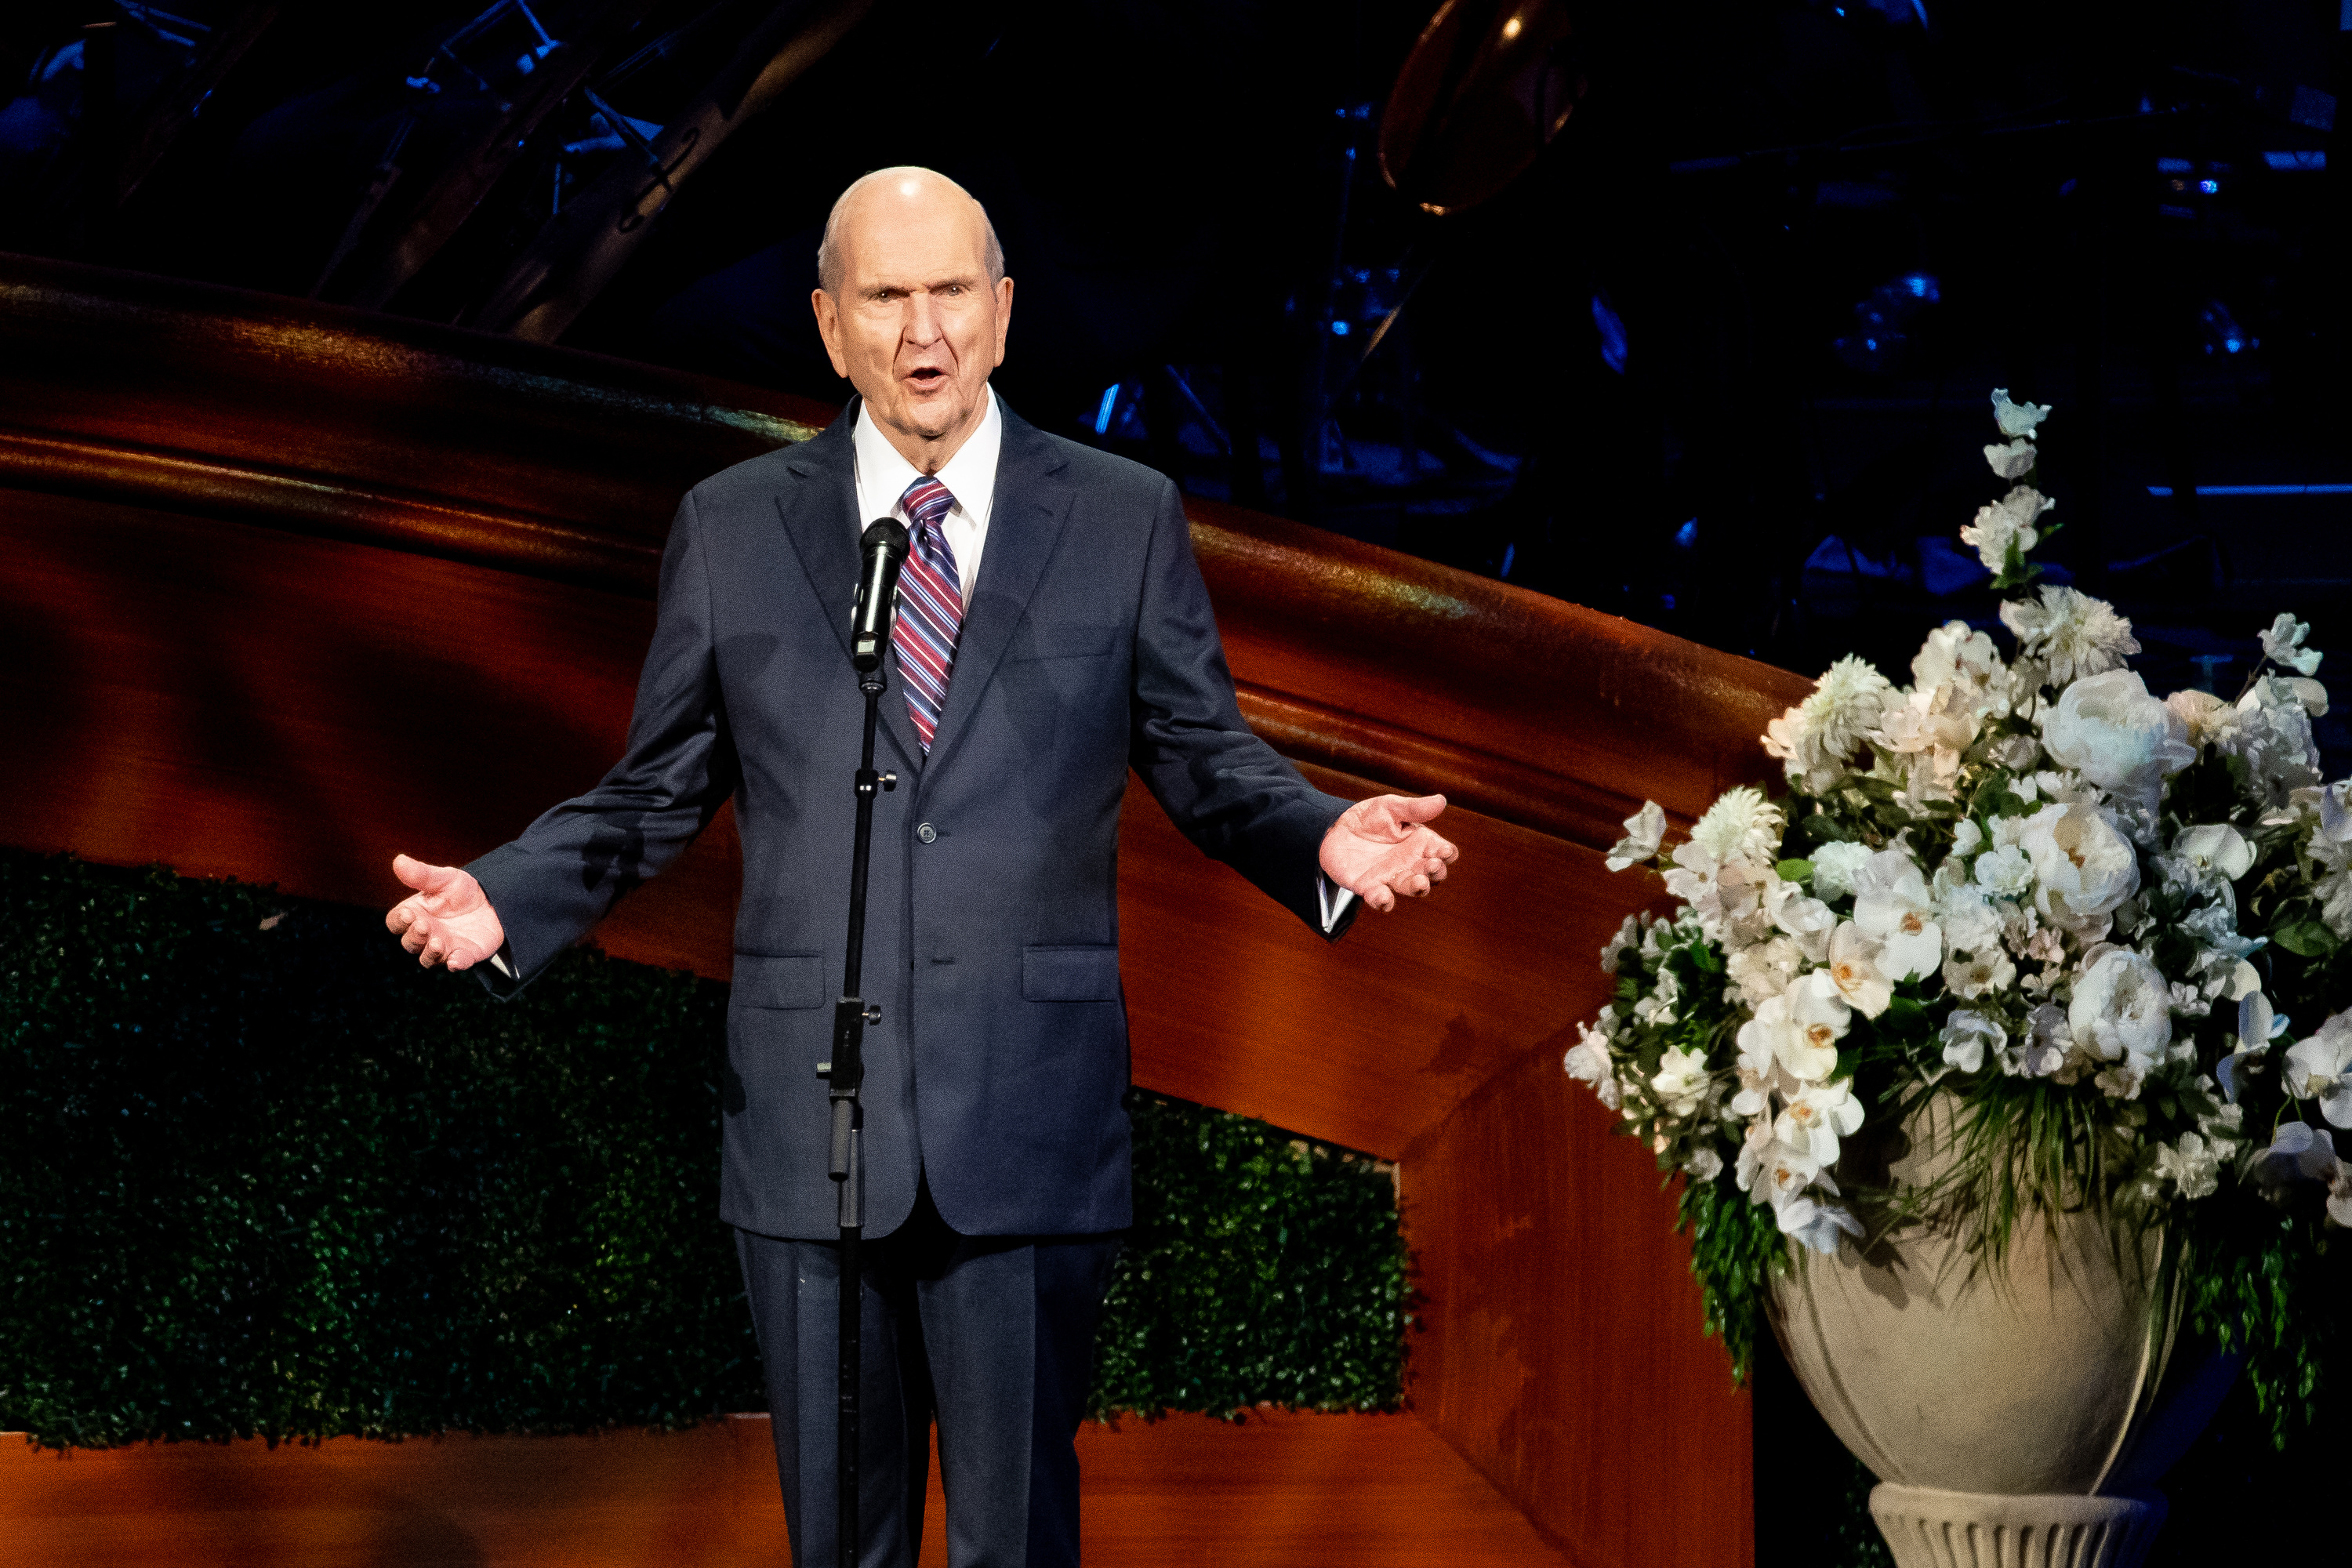 President Russell M. Nelson of The Church of Jesus Christ of Latter-day Saints speaks during a celebration of his 95th birthday at the Conference Center in Salt Lake City on Friday, Sept. 6, 2019.